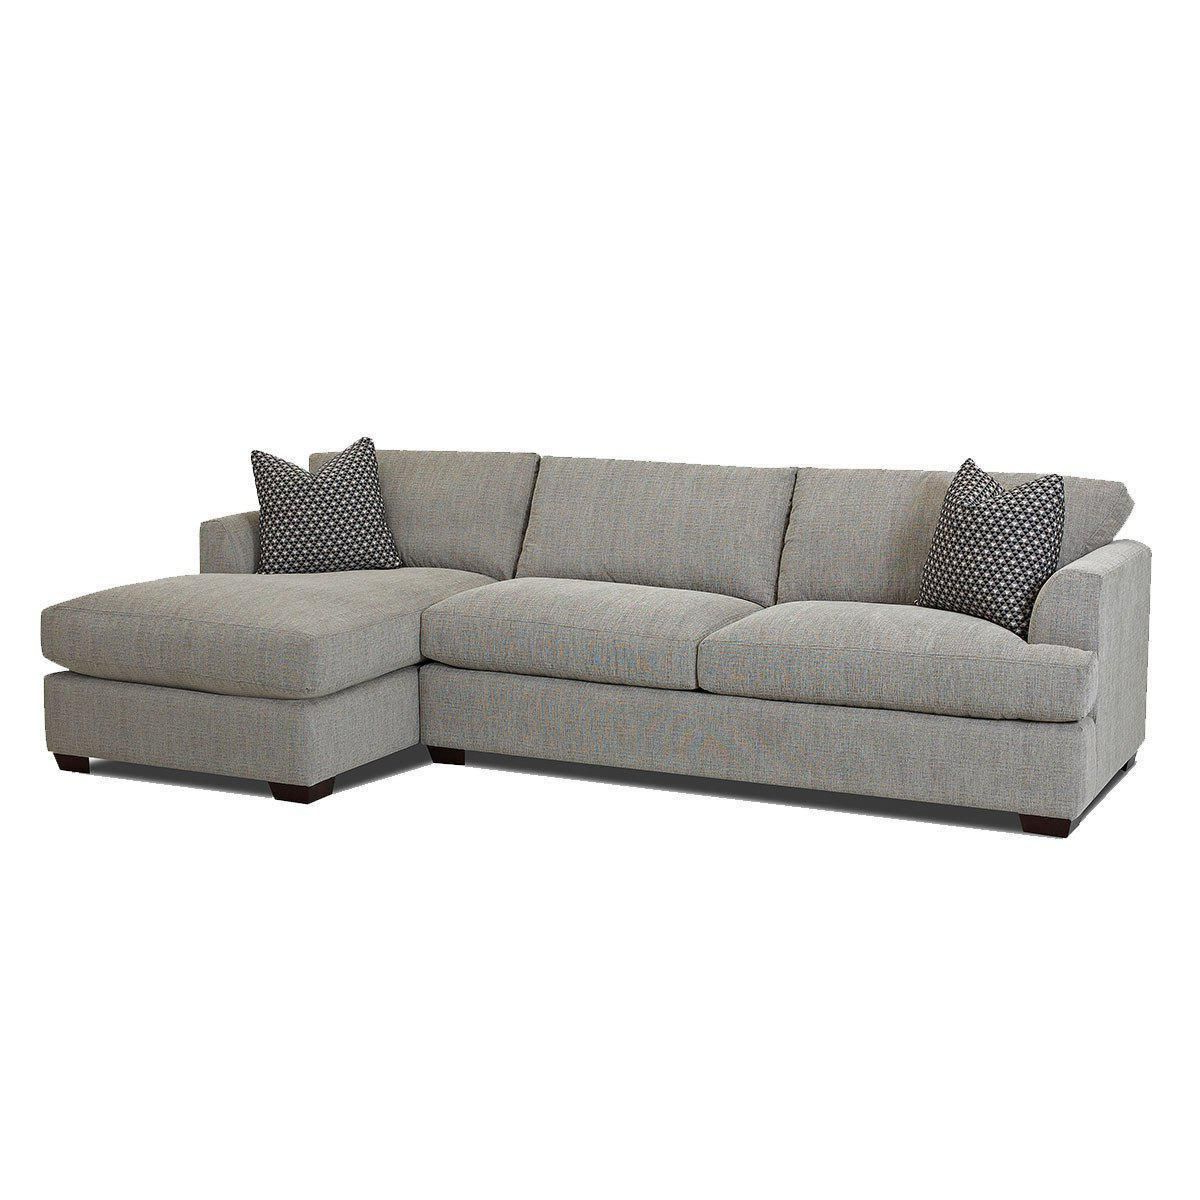 Jennifer Furniture'S Bentley 2 Piece Sectional Comes In Inside Most Up To Date 2Pc Maddox Left Arm Facing Sectional Sofas With Chaise Brown (View 14 of 25)